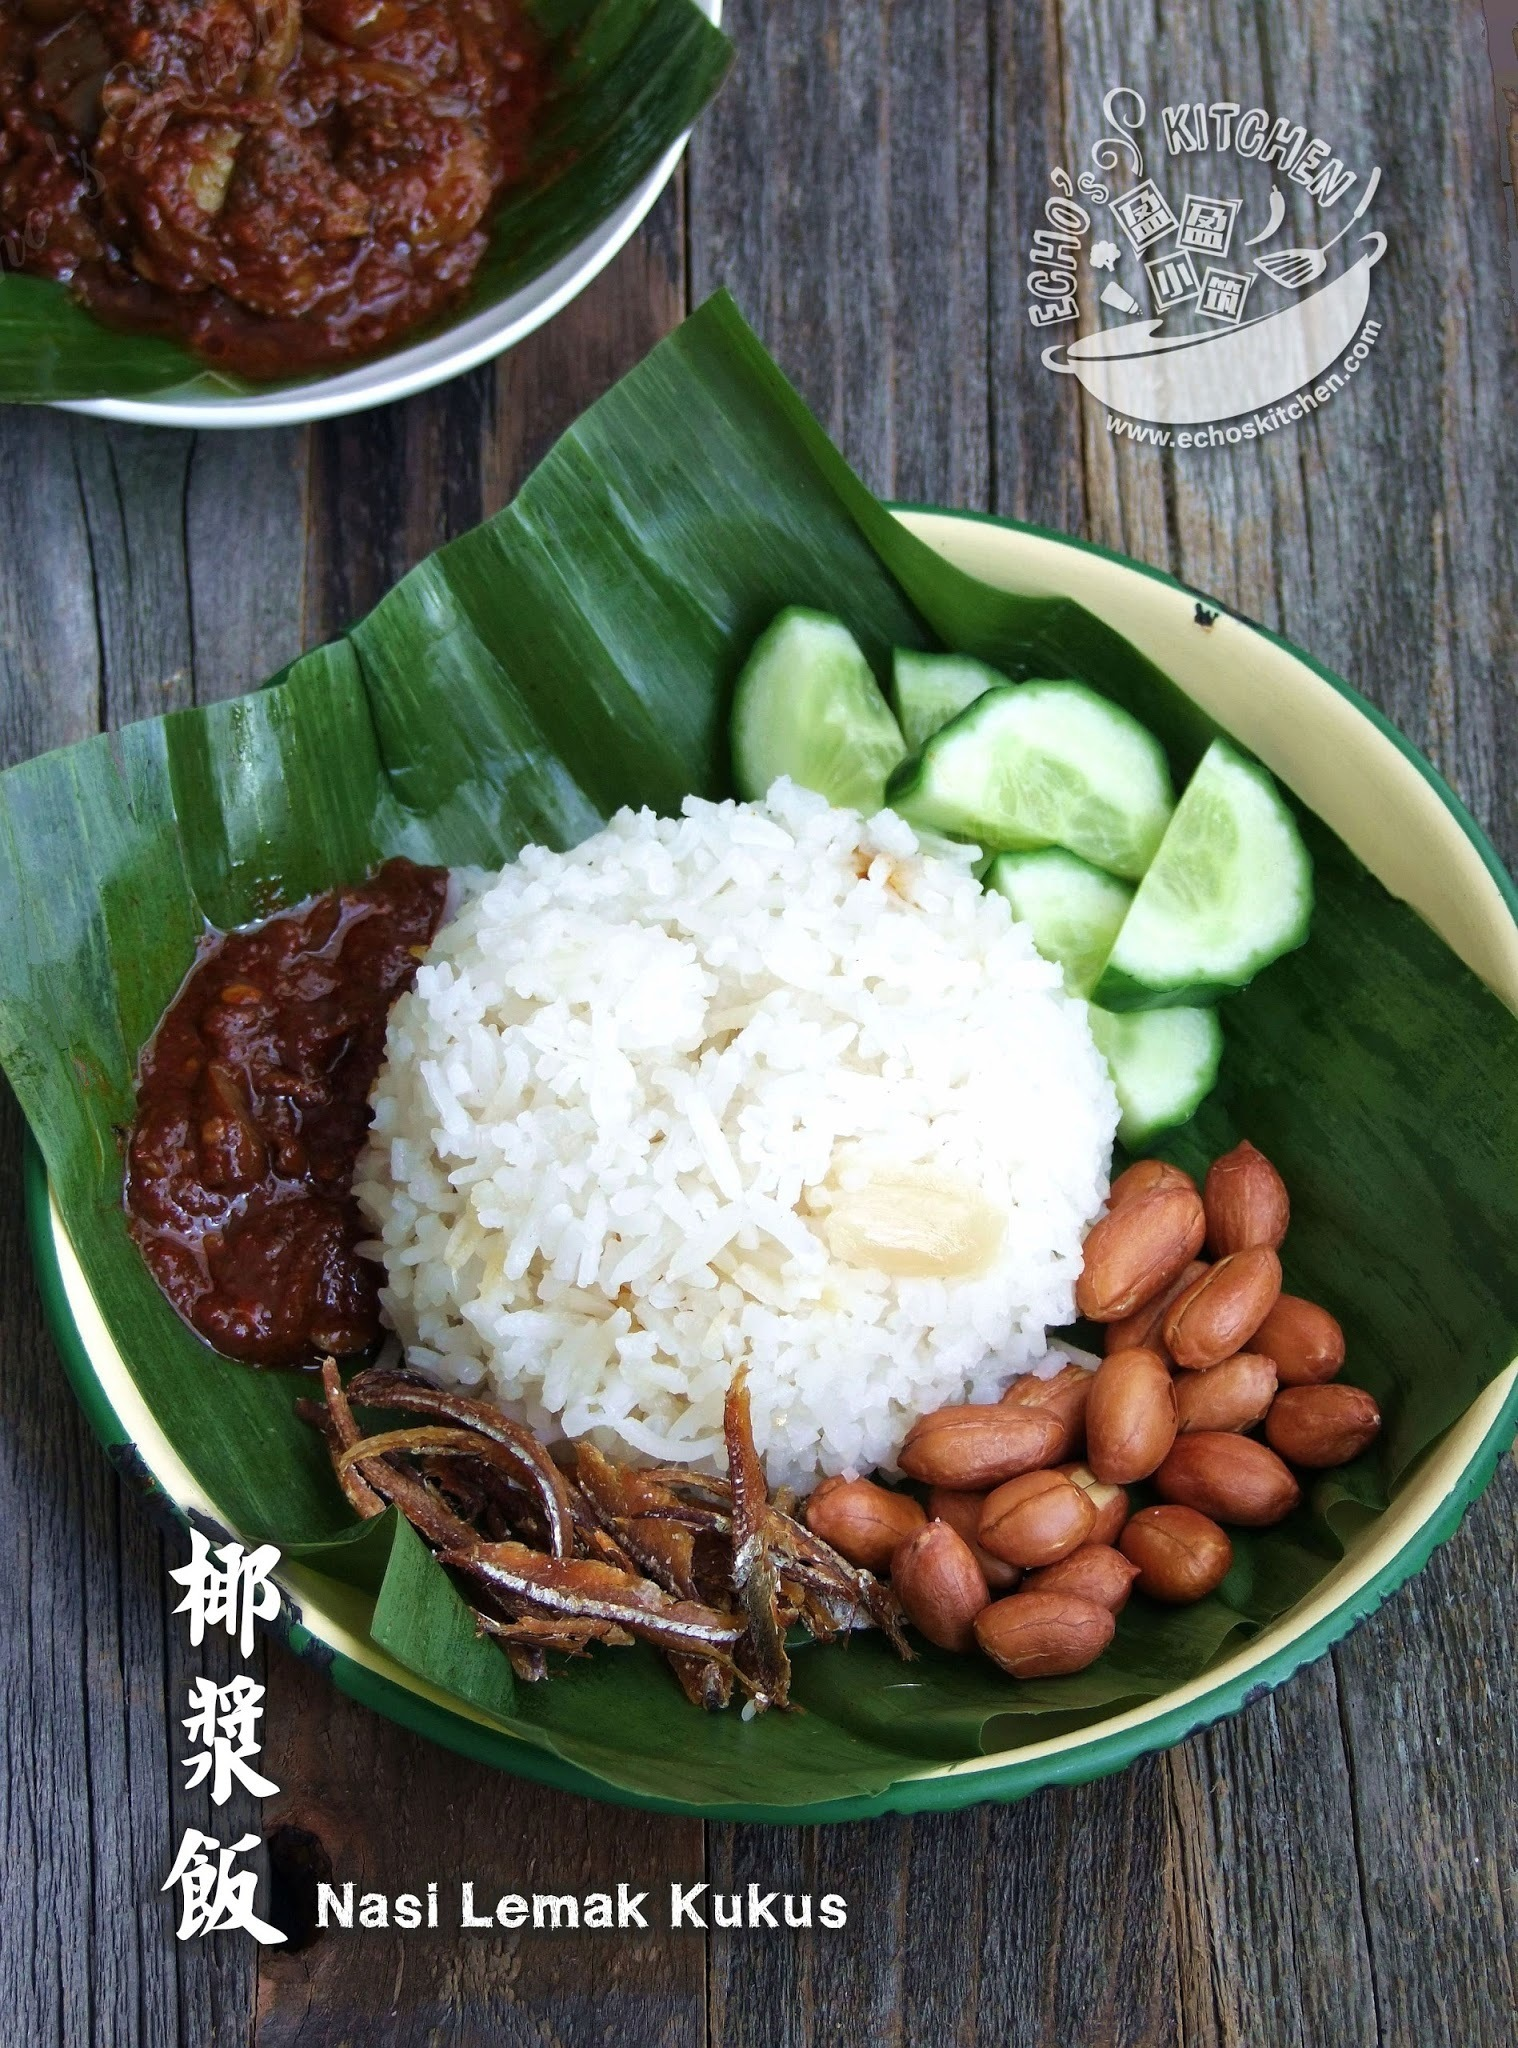 Nasi Lemak Kukus (Steamed Coconut Rice) 椰浆饭